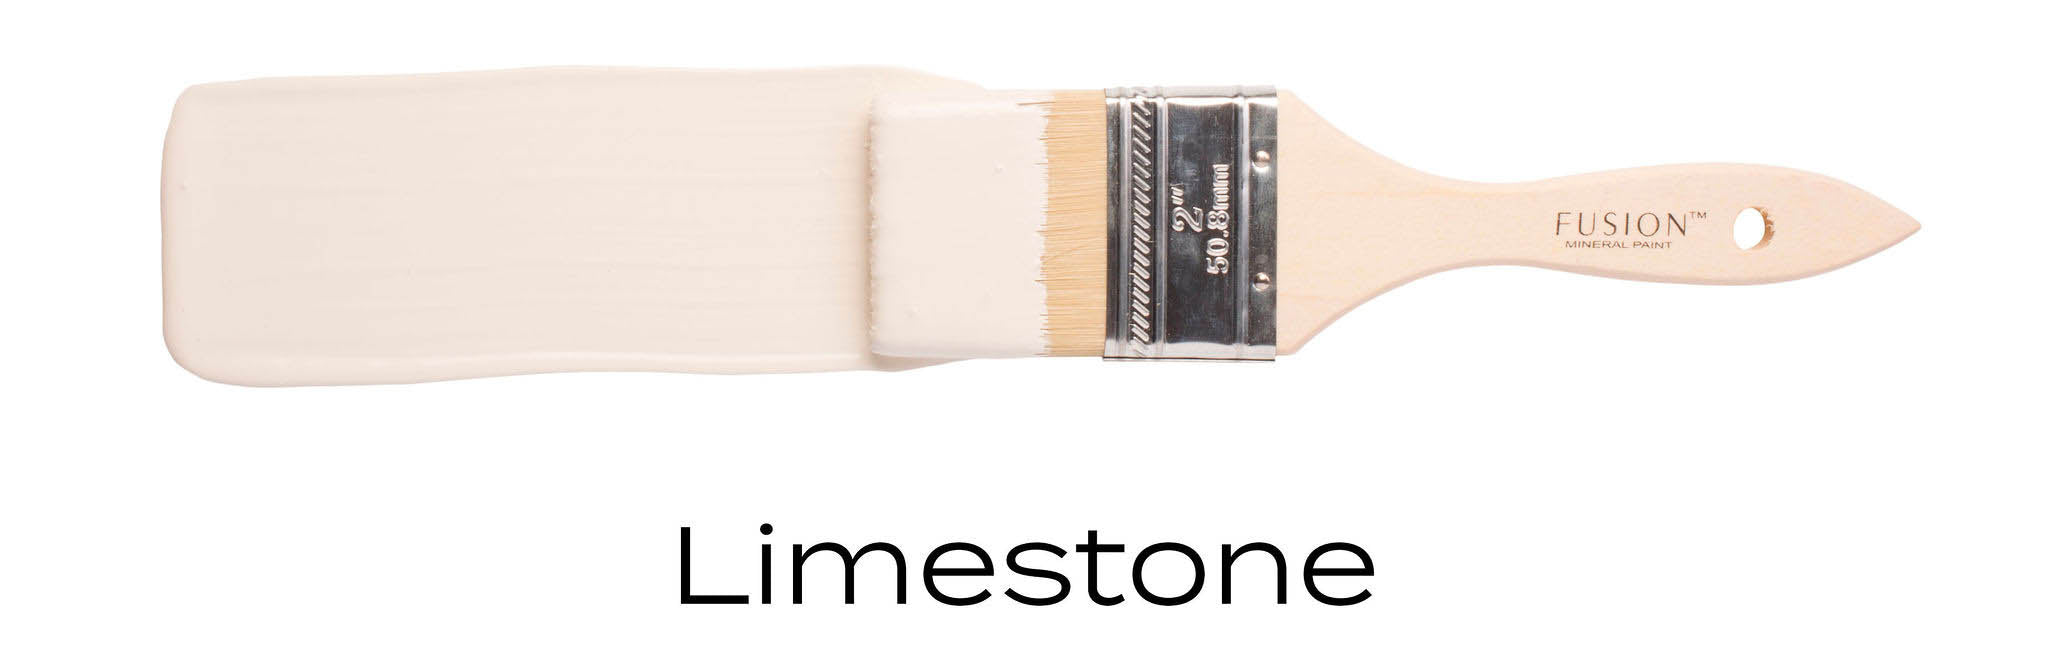 limestone fusion mineral paint colour furniture paint on a paint brush stroke